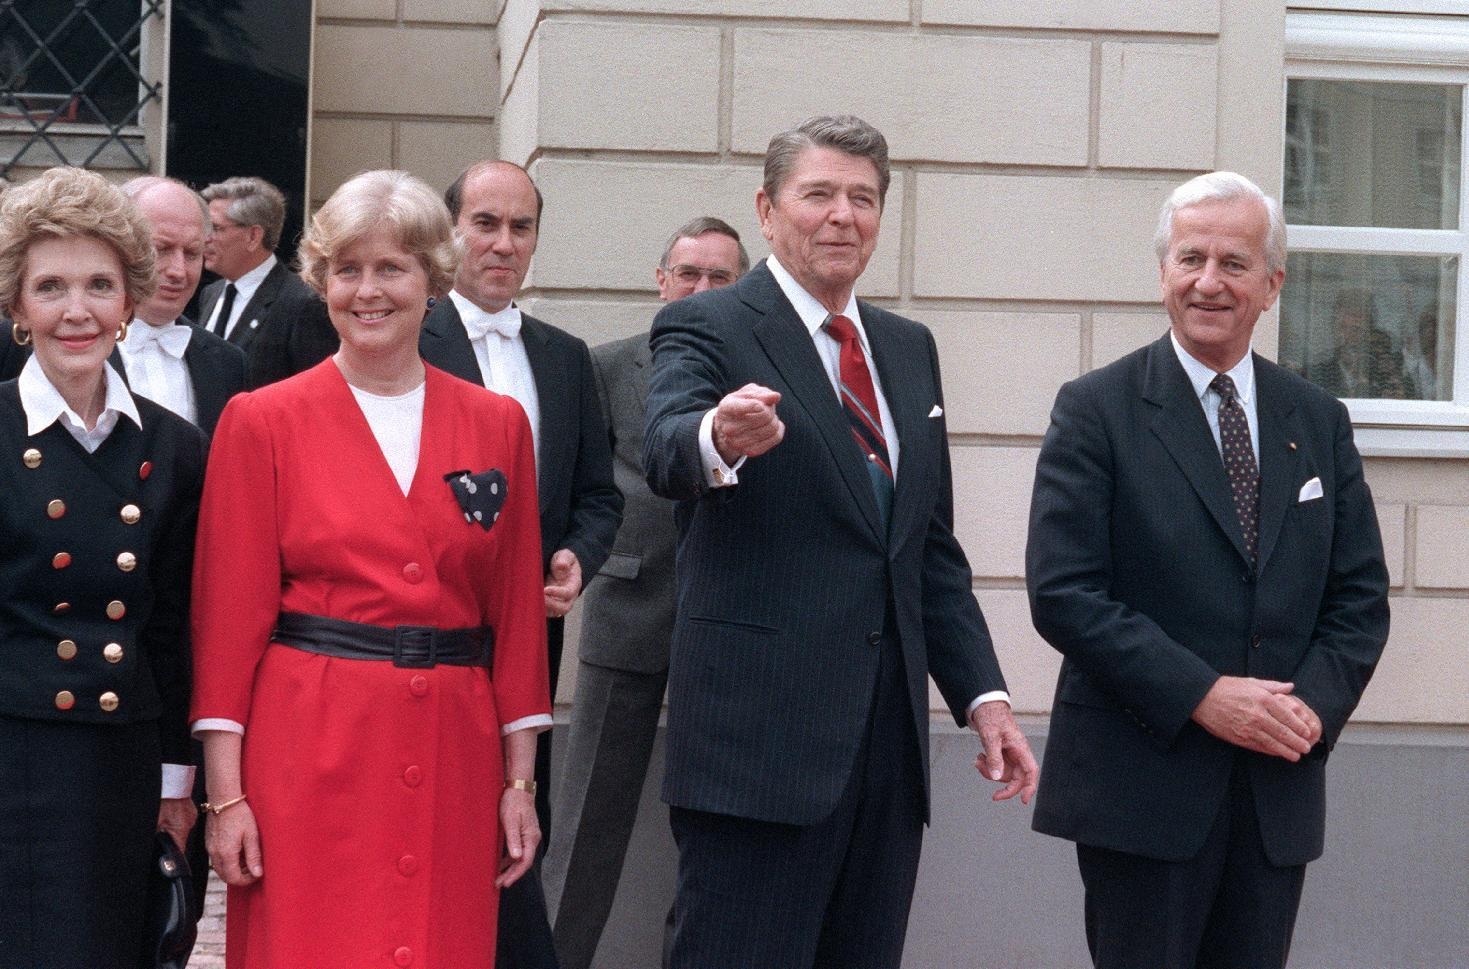 Richard von Weizsaecker (right) with (from left) US First Lady Nancy Reagan, his wife Marianne von Weizsaecker and US President Ronald Reagan in Berlin in 1987 (AFP Photo/Mike Sargent)